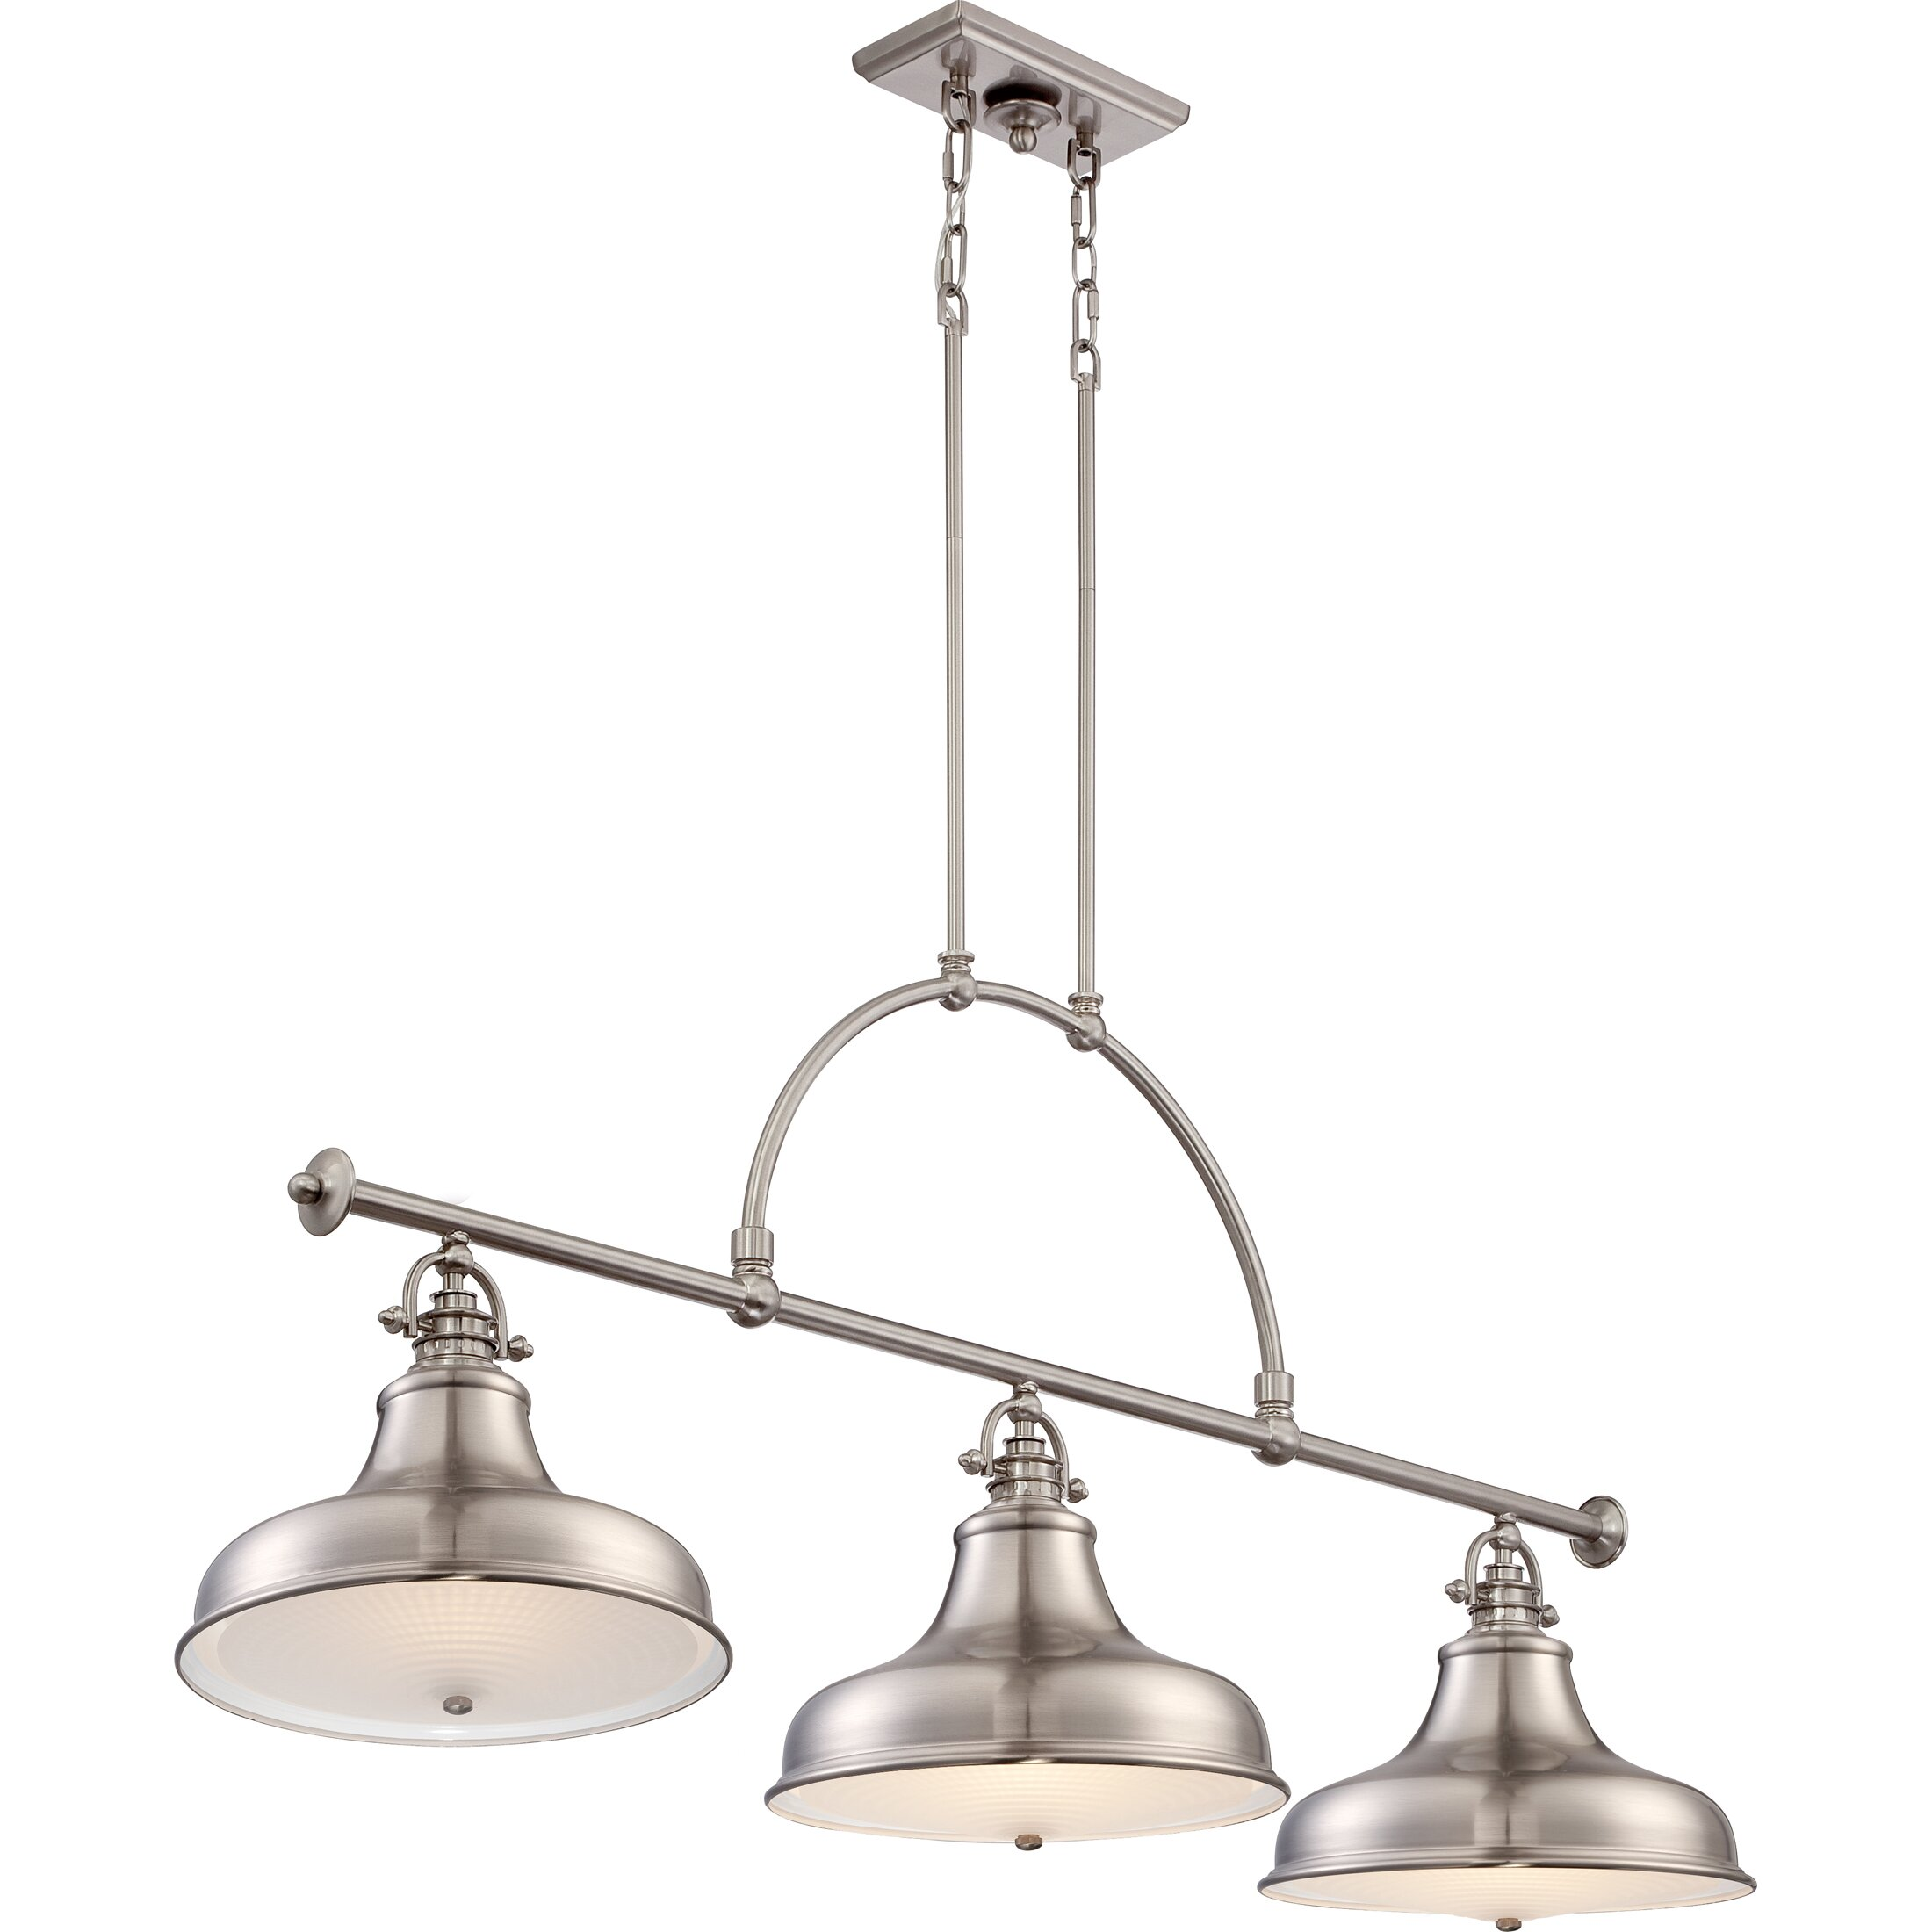 Trent austin design cetona 3 light kitchen island pendant for Kitchen pendant lighting island